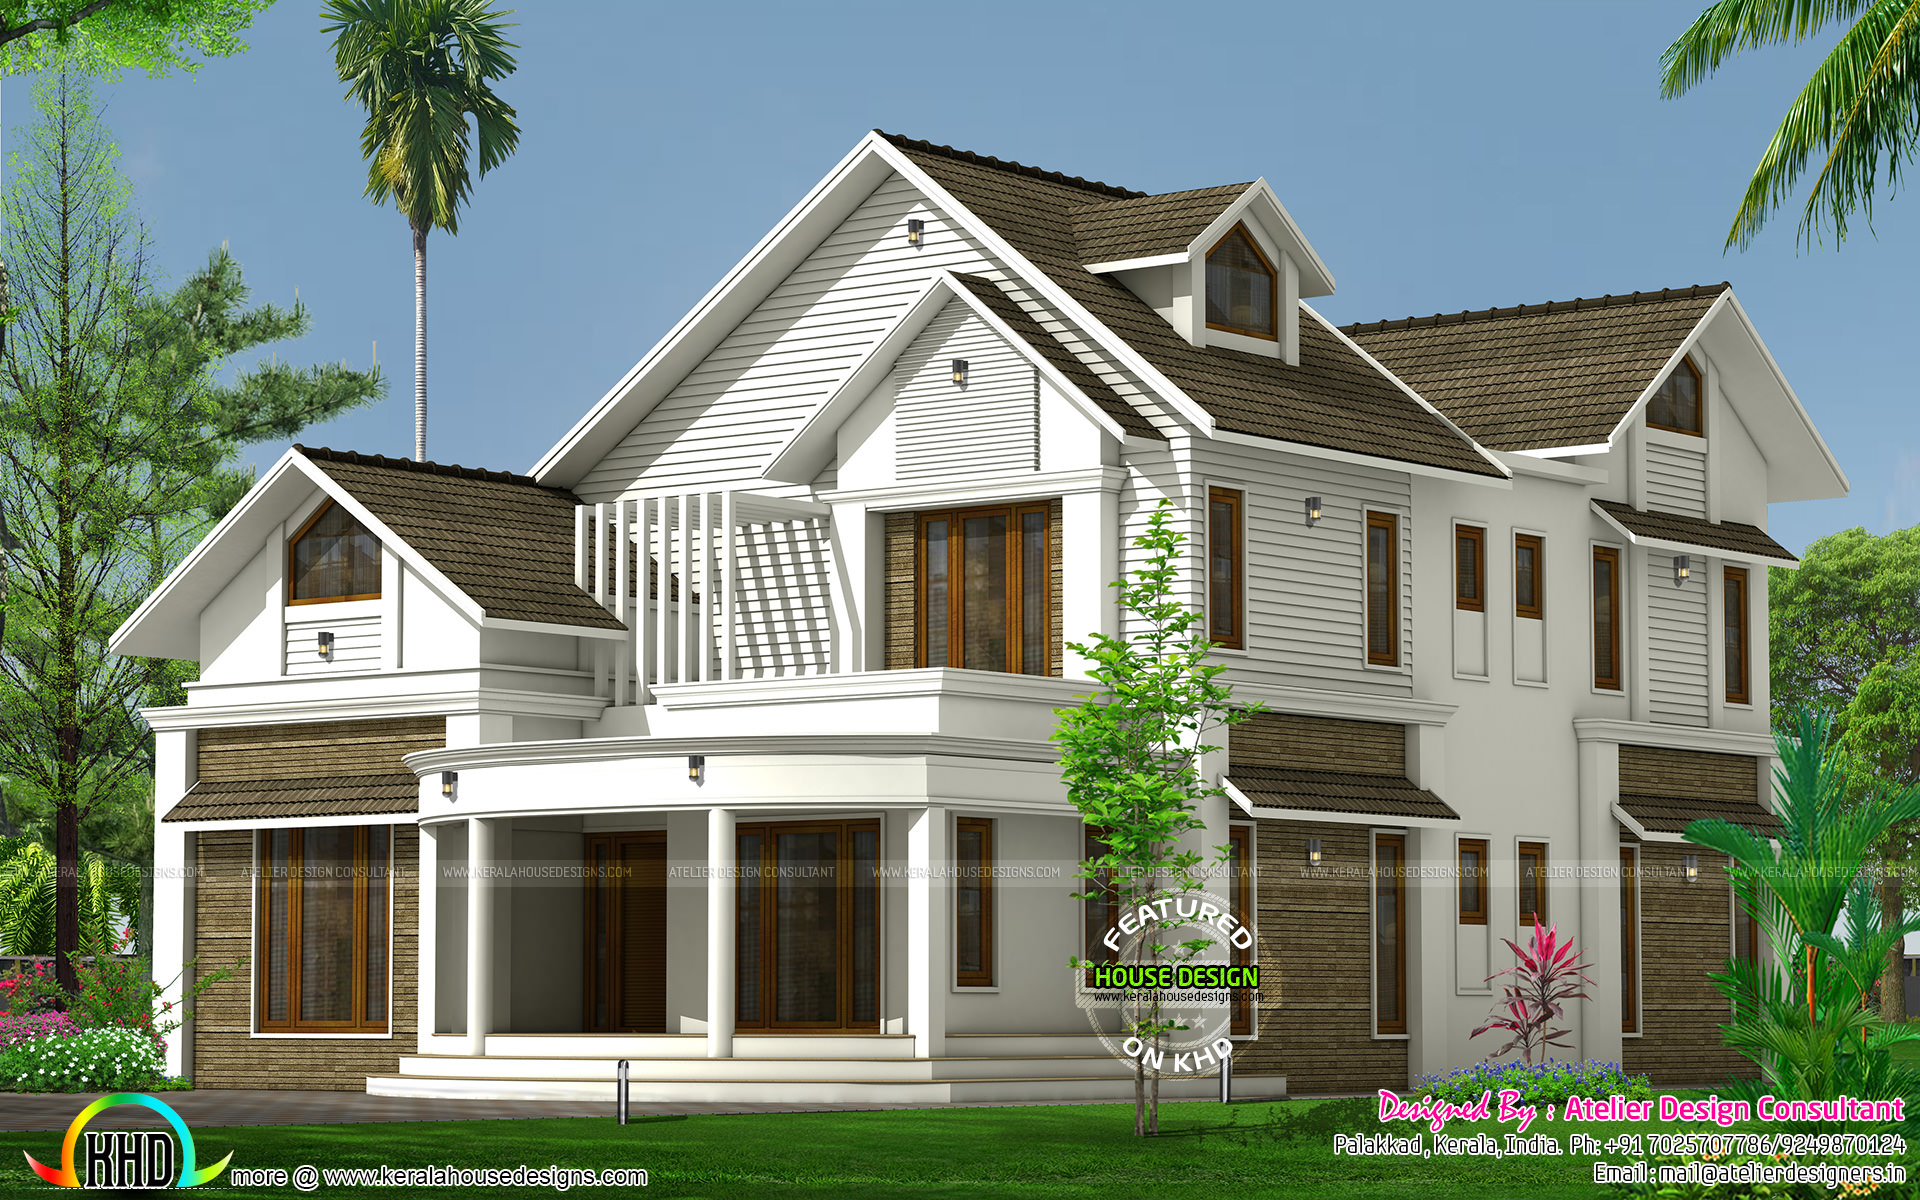 sloping-roof-modern-home.jpg